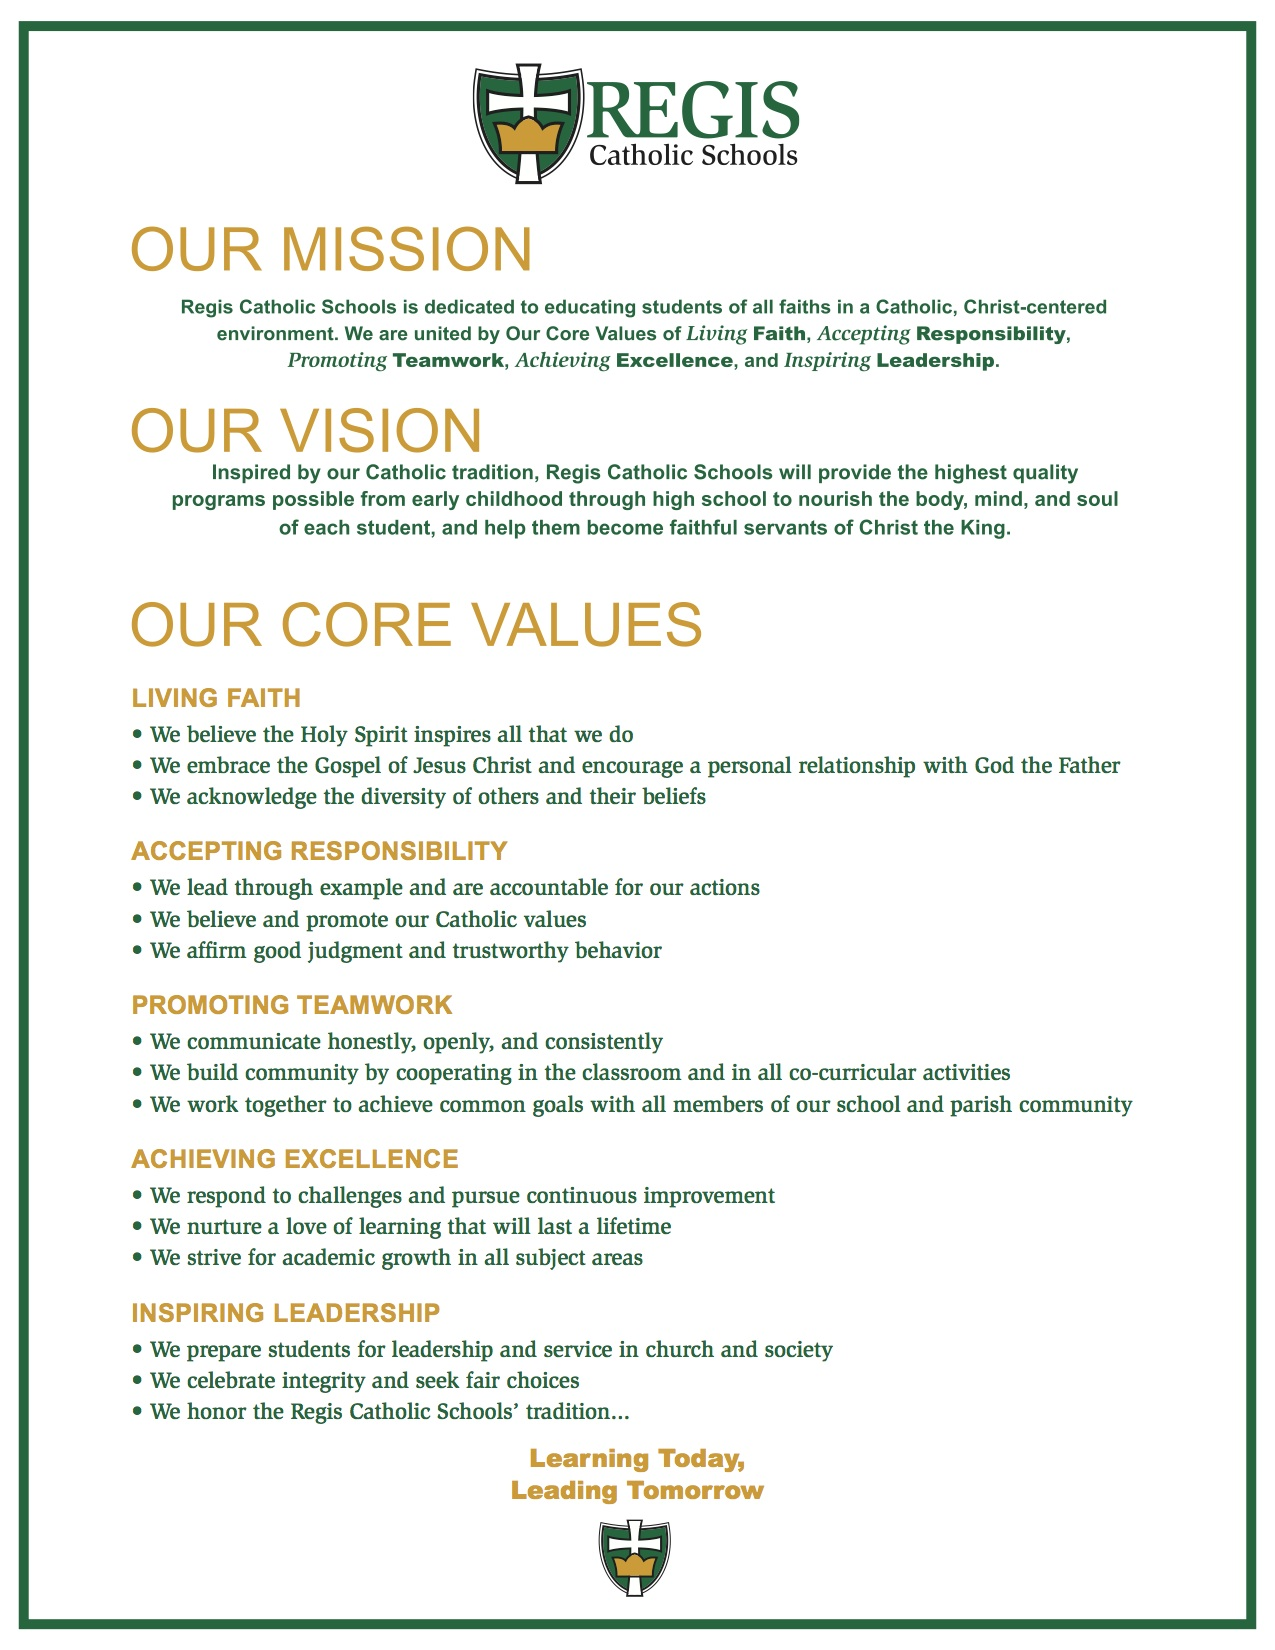 educational mission statement paper Learn the basics of developing mission, vision and value statements in this topic from the free management library.